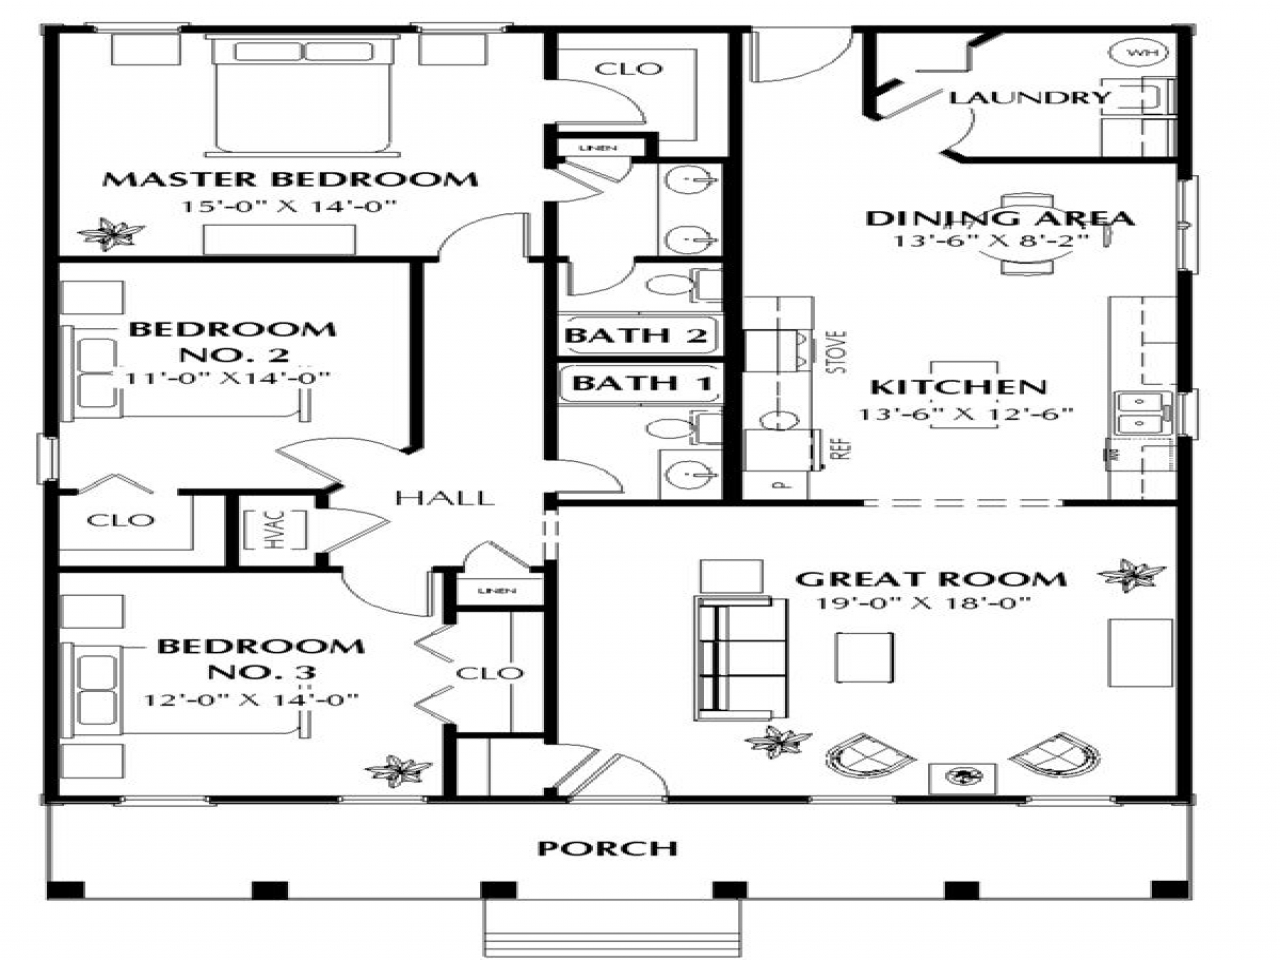 1500 Square Feet House Plans House Plans 1500 Square Feet